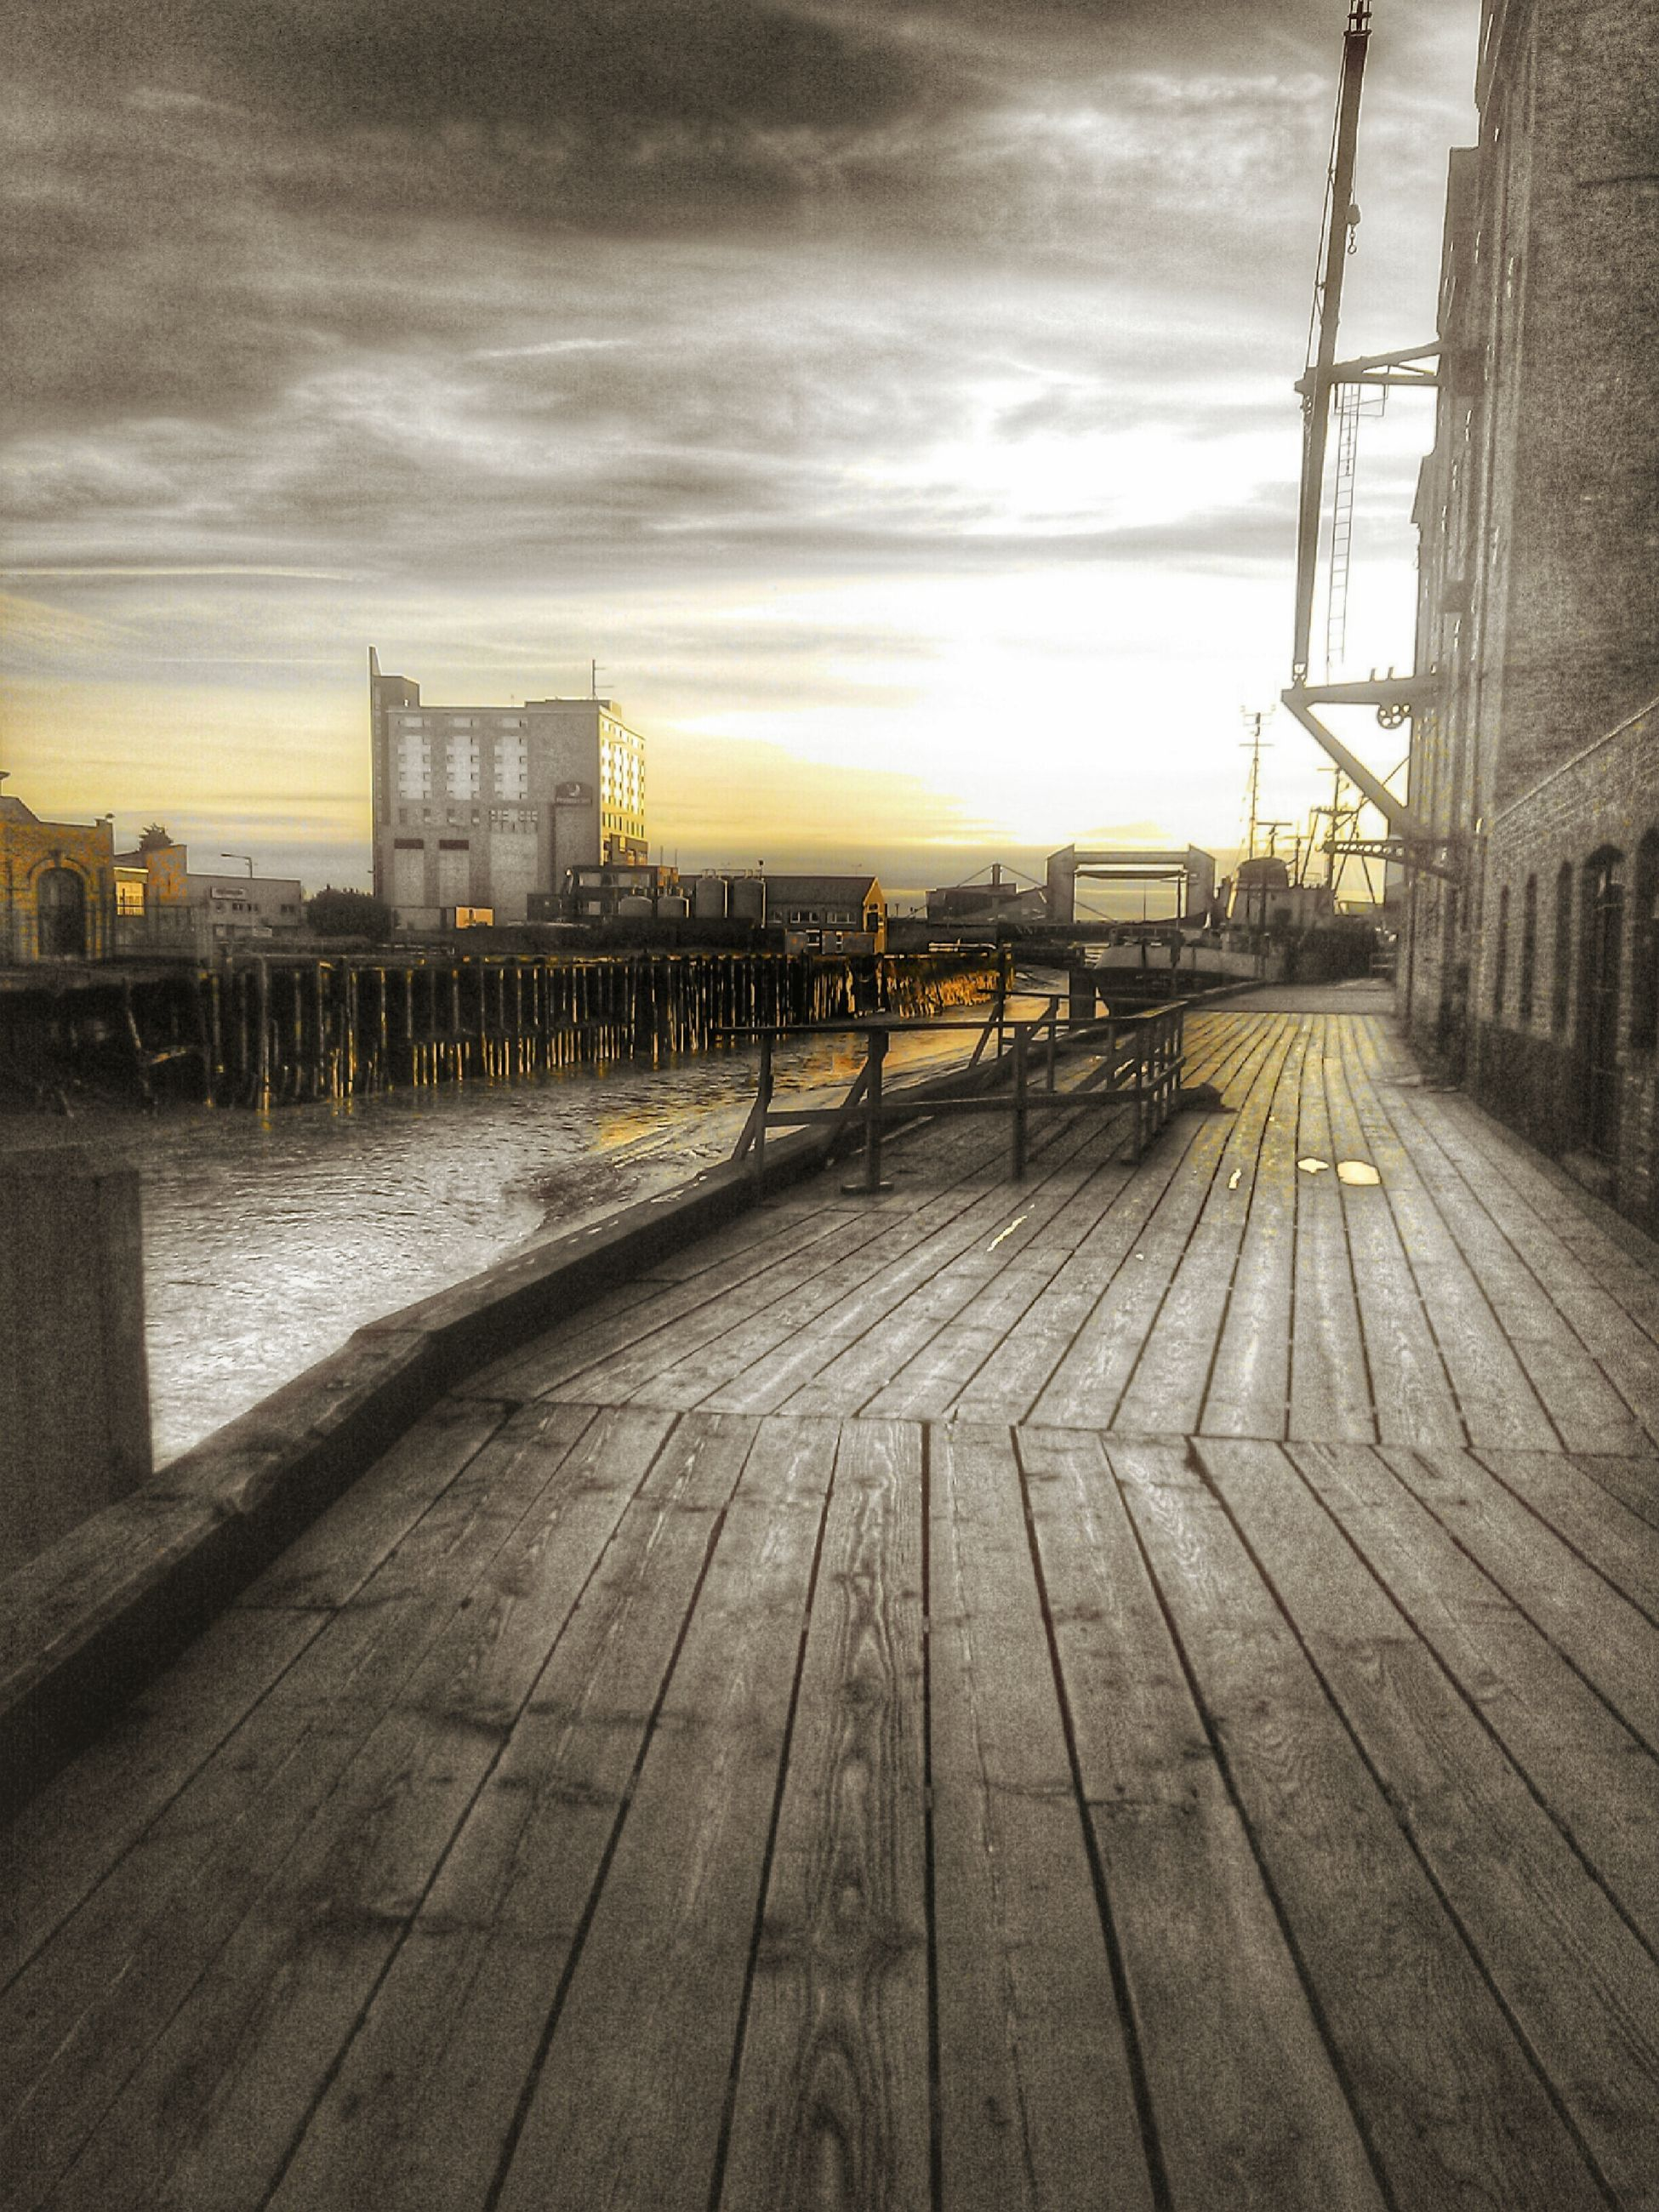 built structure, architecture, sky, building exterior, water, cloud - sky, city, pier, wood - material, the way forward, boardwalk, cloud, cloudy, sunset, river, railing, sea, outdoors, diminishing perspective, no people